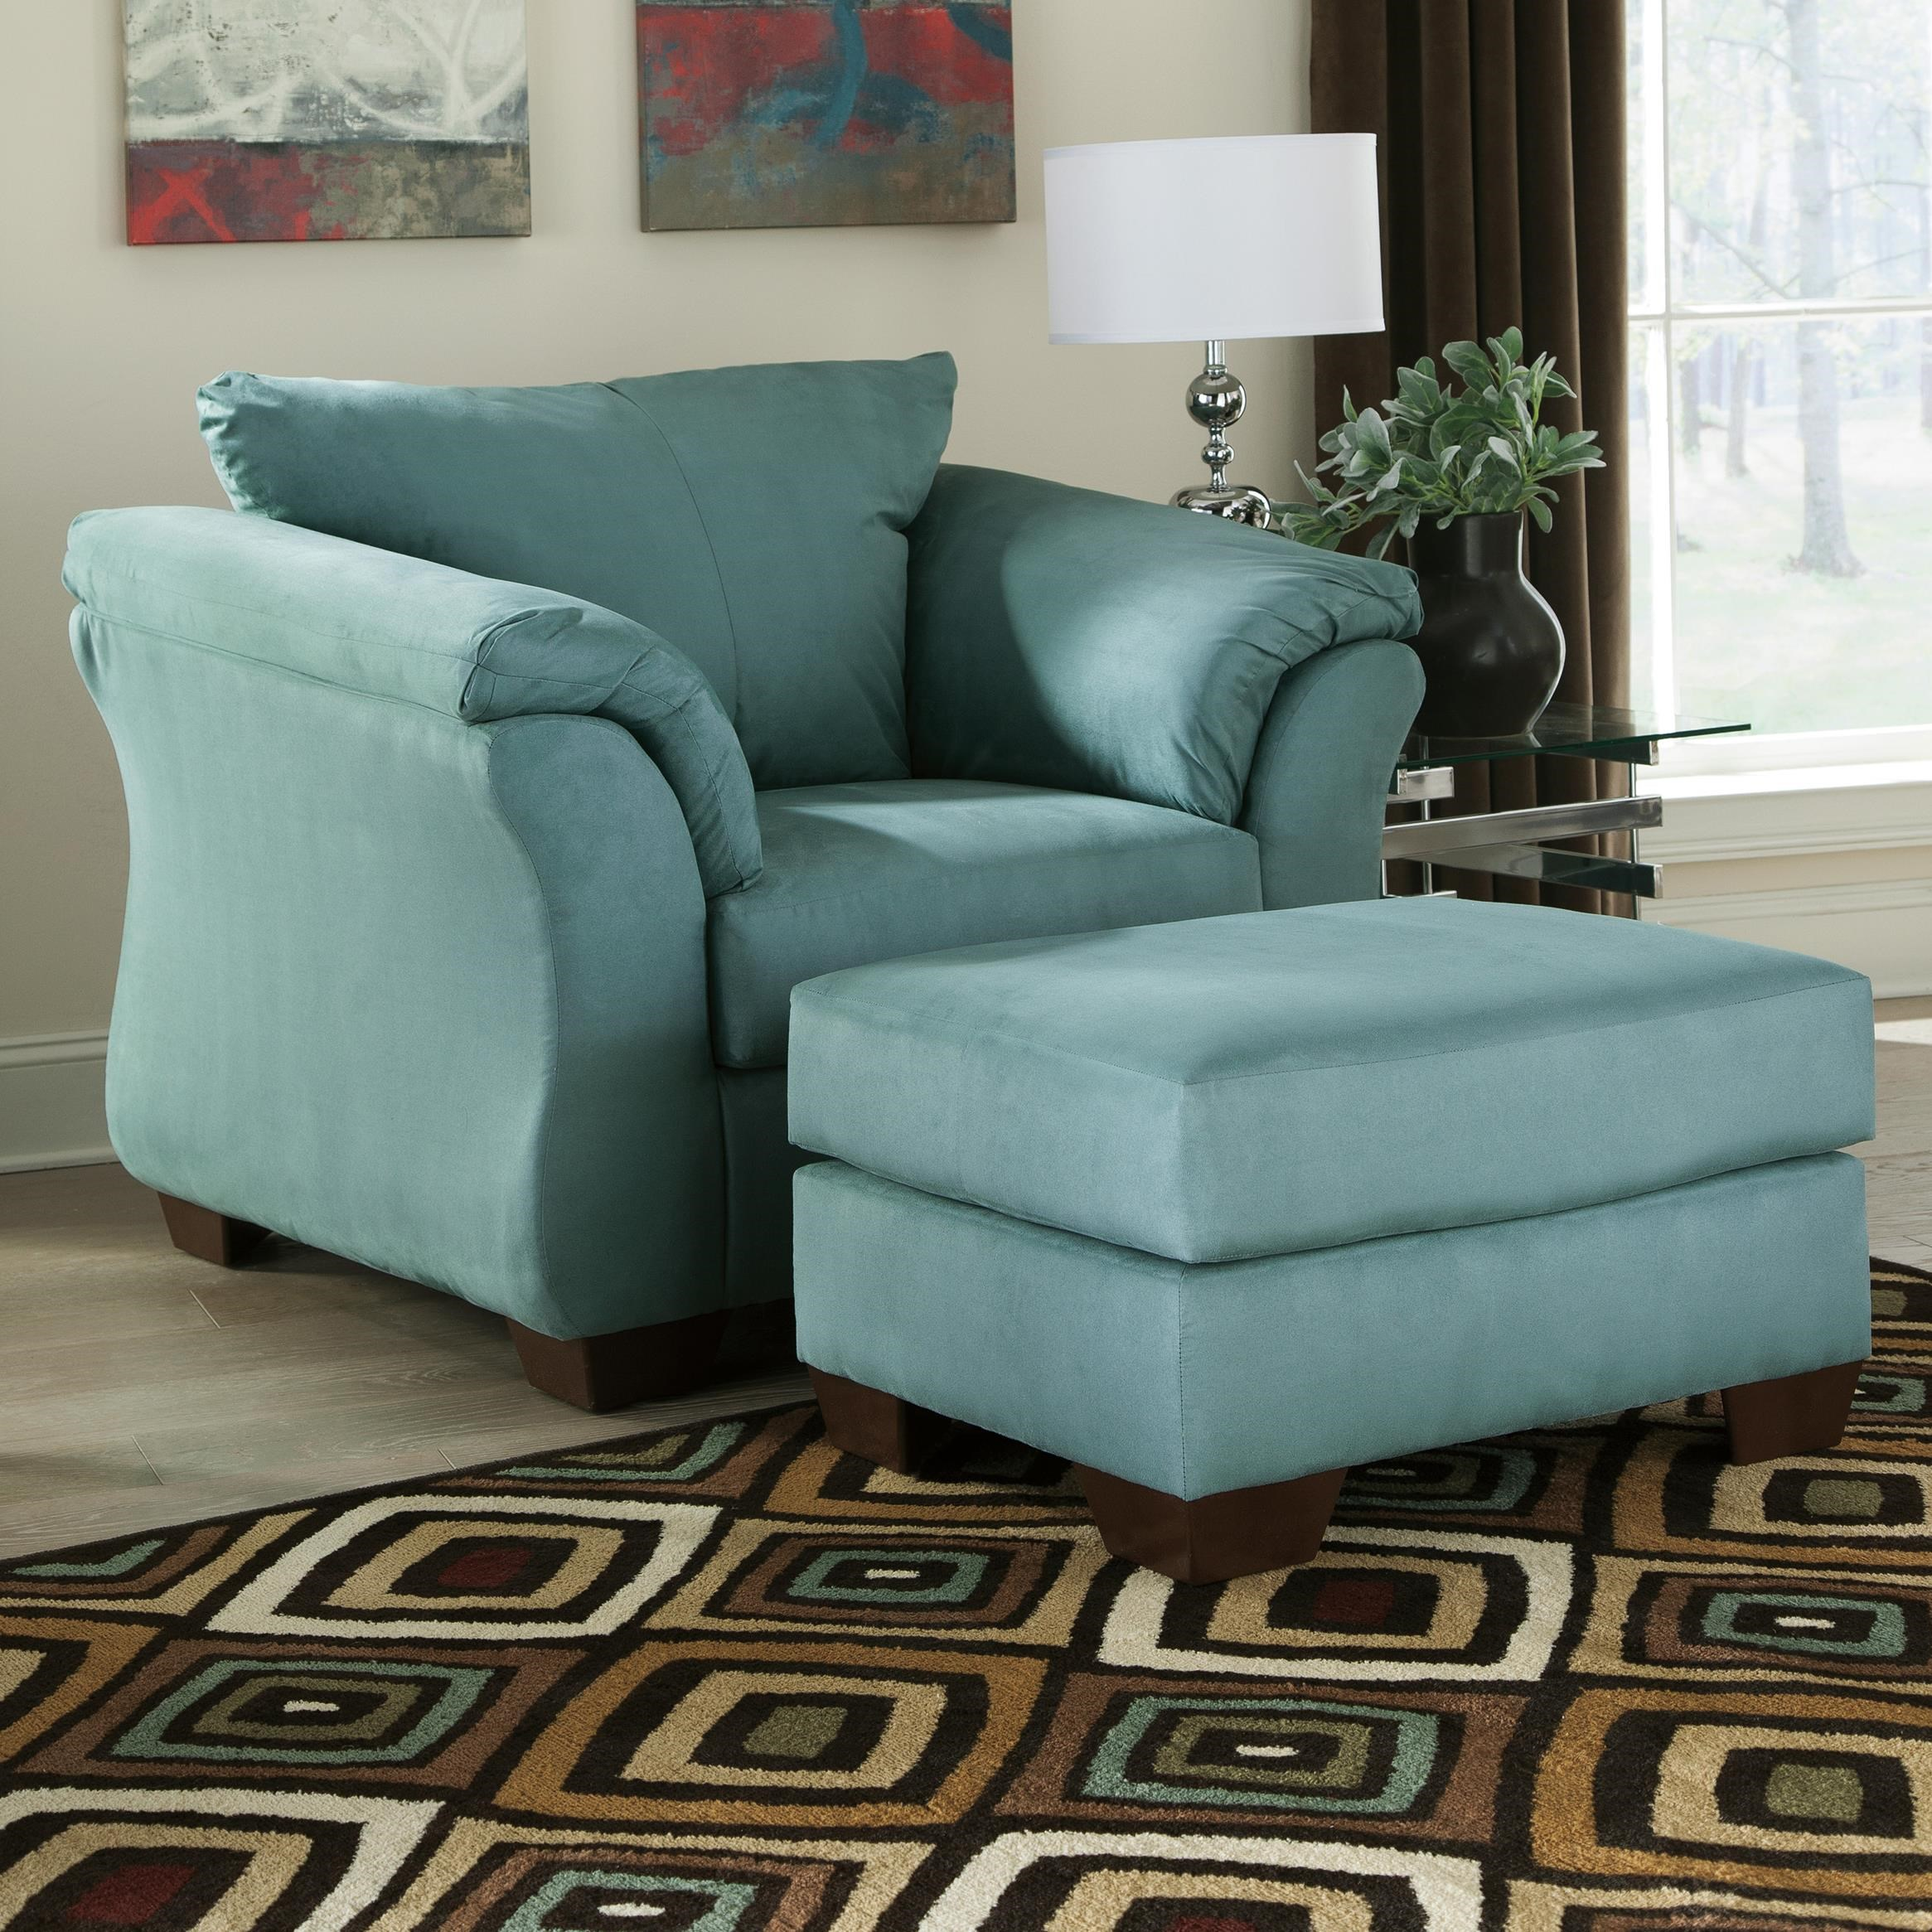 Signature Design By Ashley Darcy   Sky Contemporary Upholstered Chair And  Ottoman With Tapered Legs